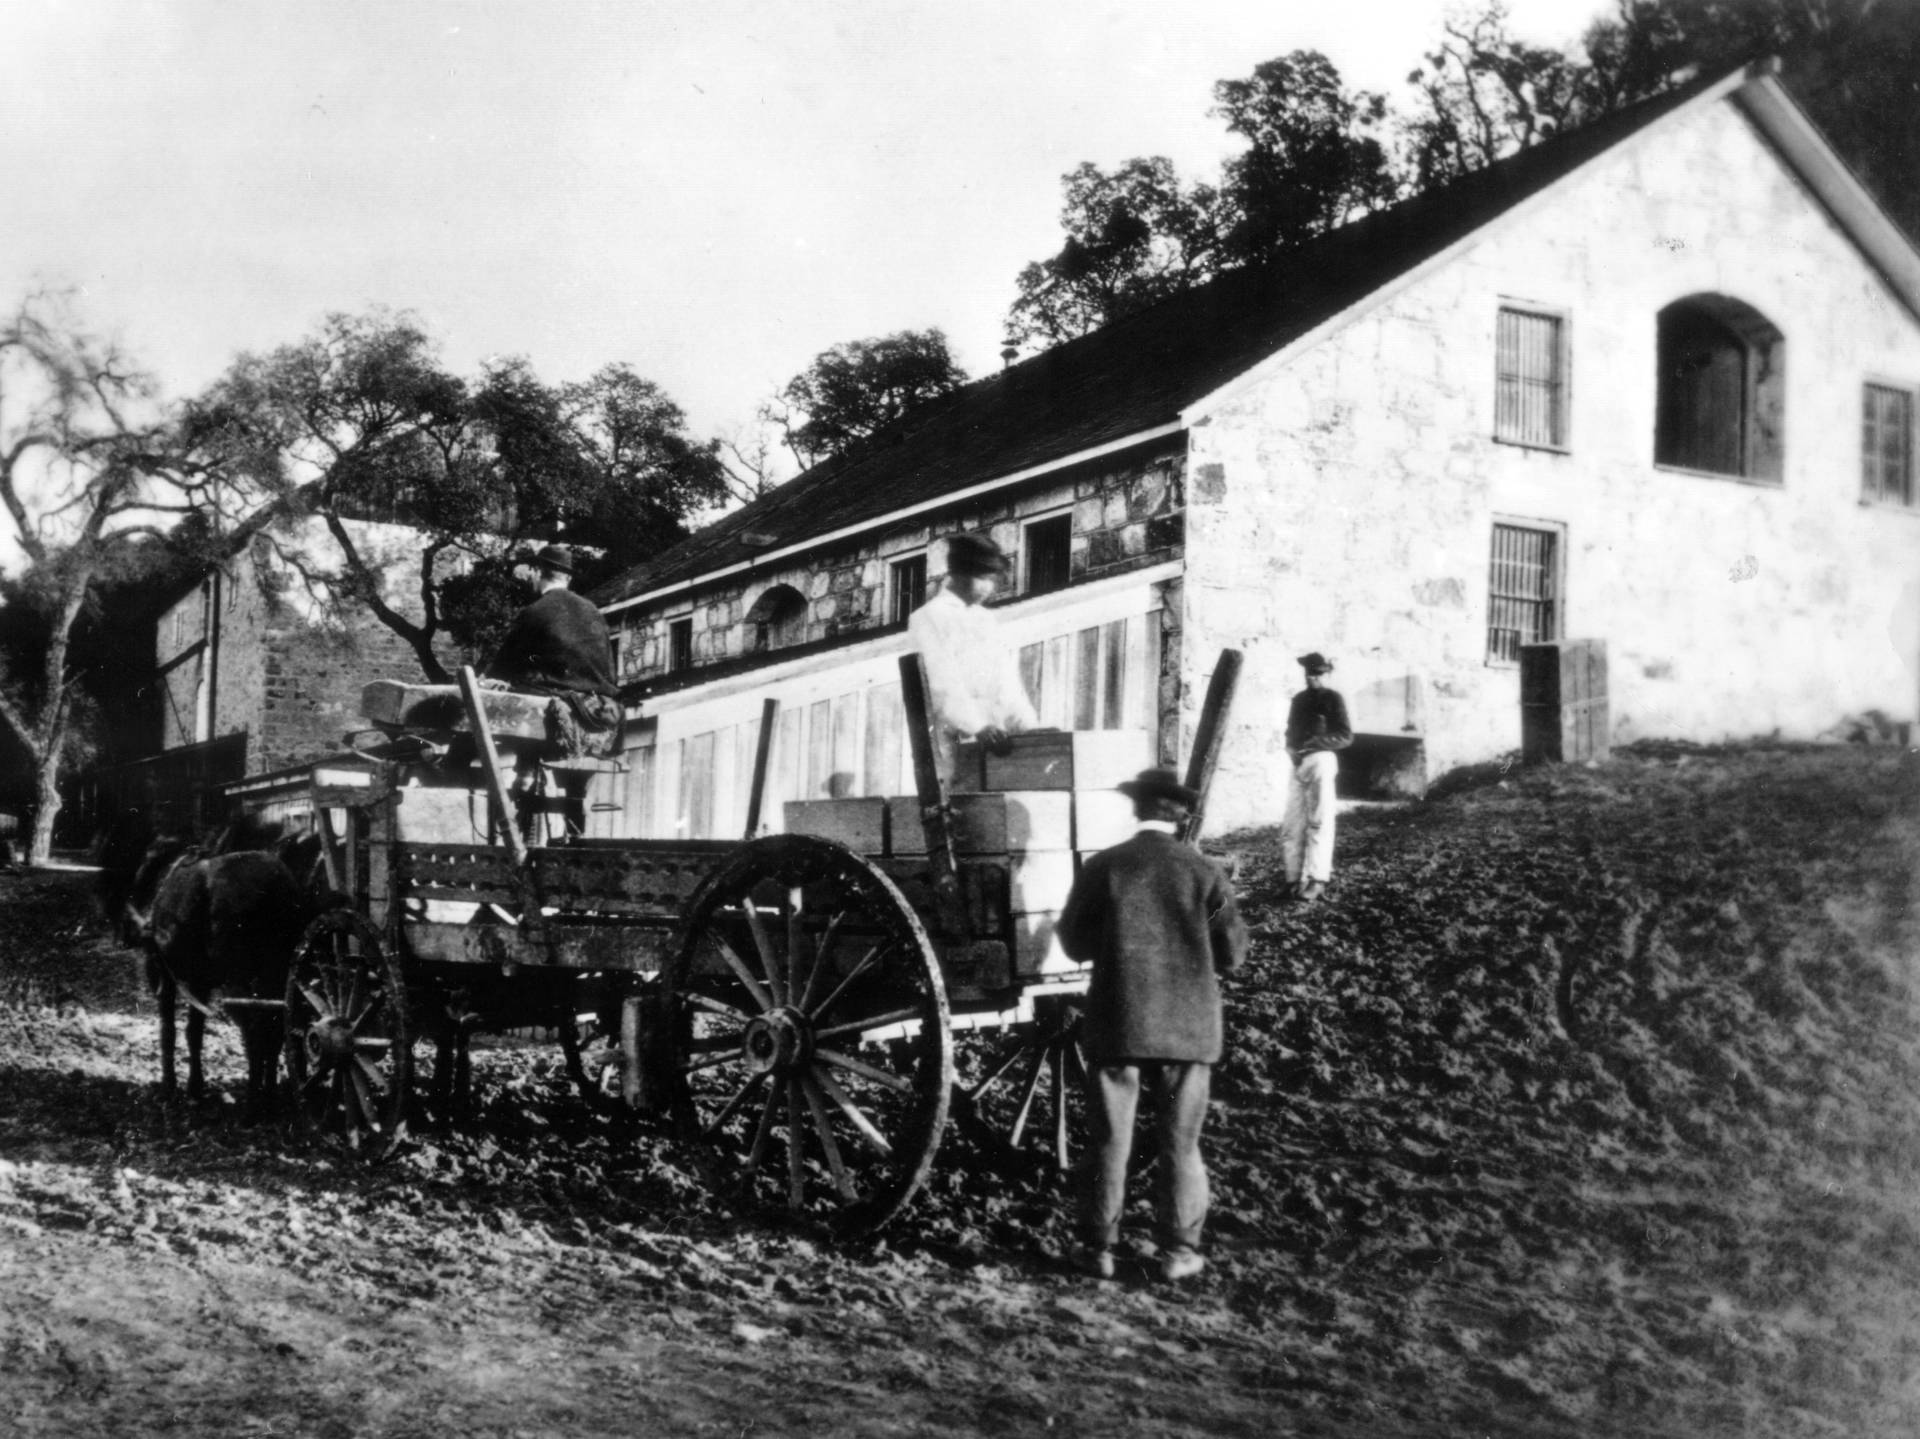 Chinese workers transport wine at Buena Vista, the oldest winery in California's Sonoma County, built in the mid-1800s. From the backbreaking labor of clearing roads and digging out caves to highly skilled horticultural work, Chinese laborers helped build Sonoma's wine country.